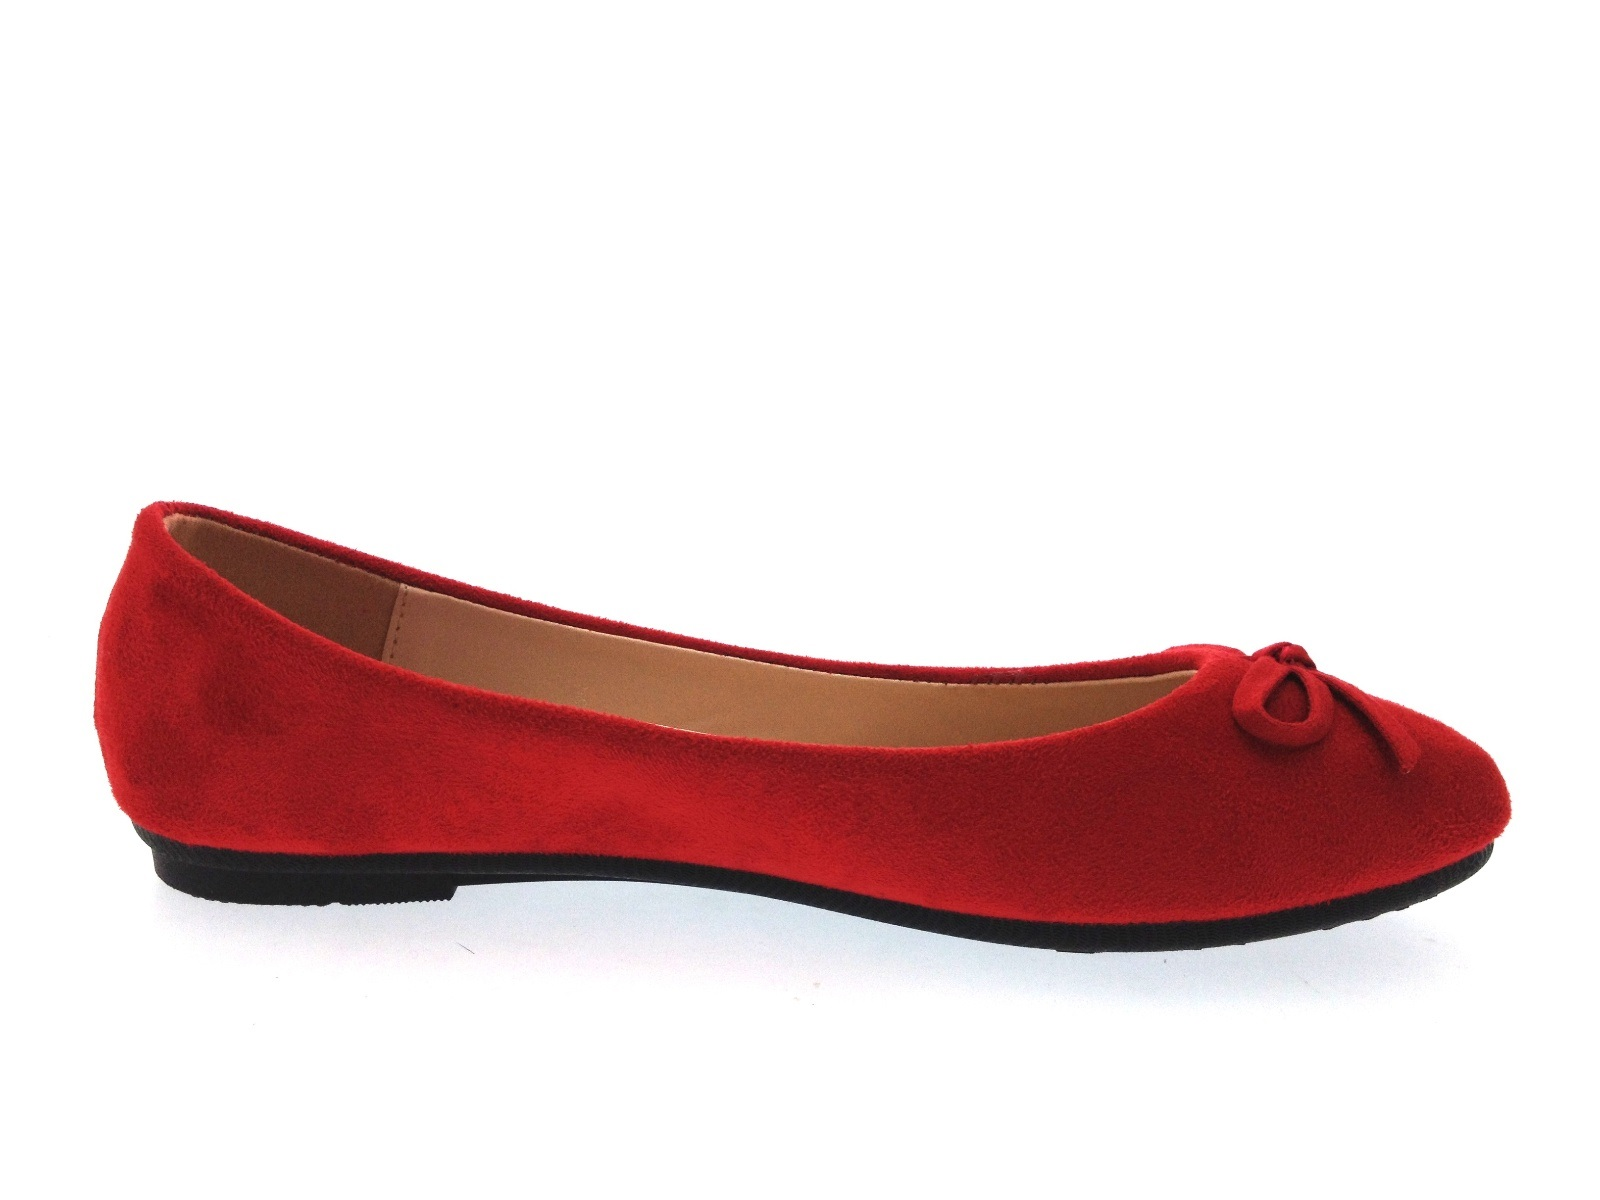 6e12c367f88b5 Womens Faux Suede Dolly Ballet Pumps Flat Casual Loafers Dolly Shoes ...